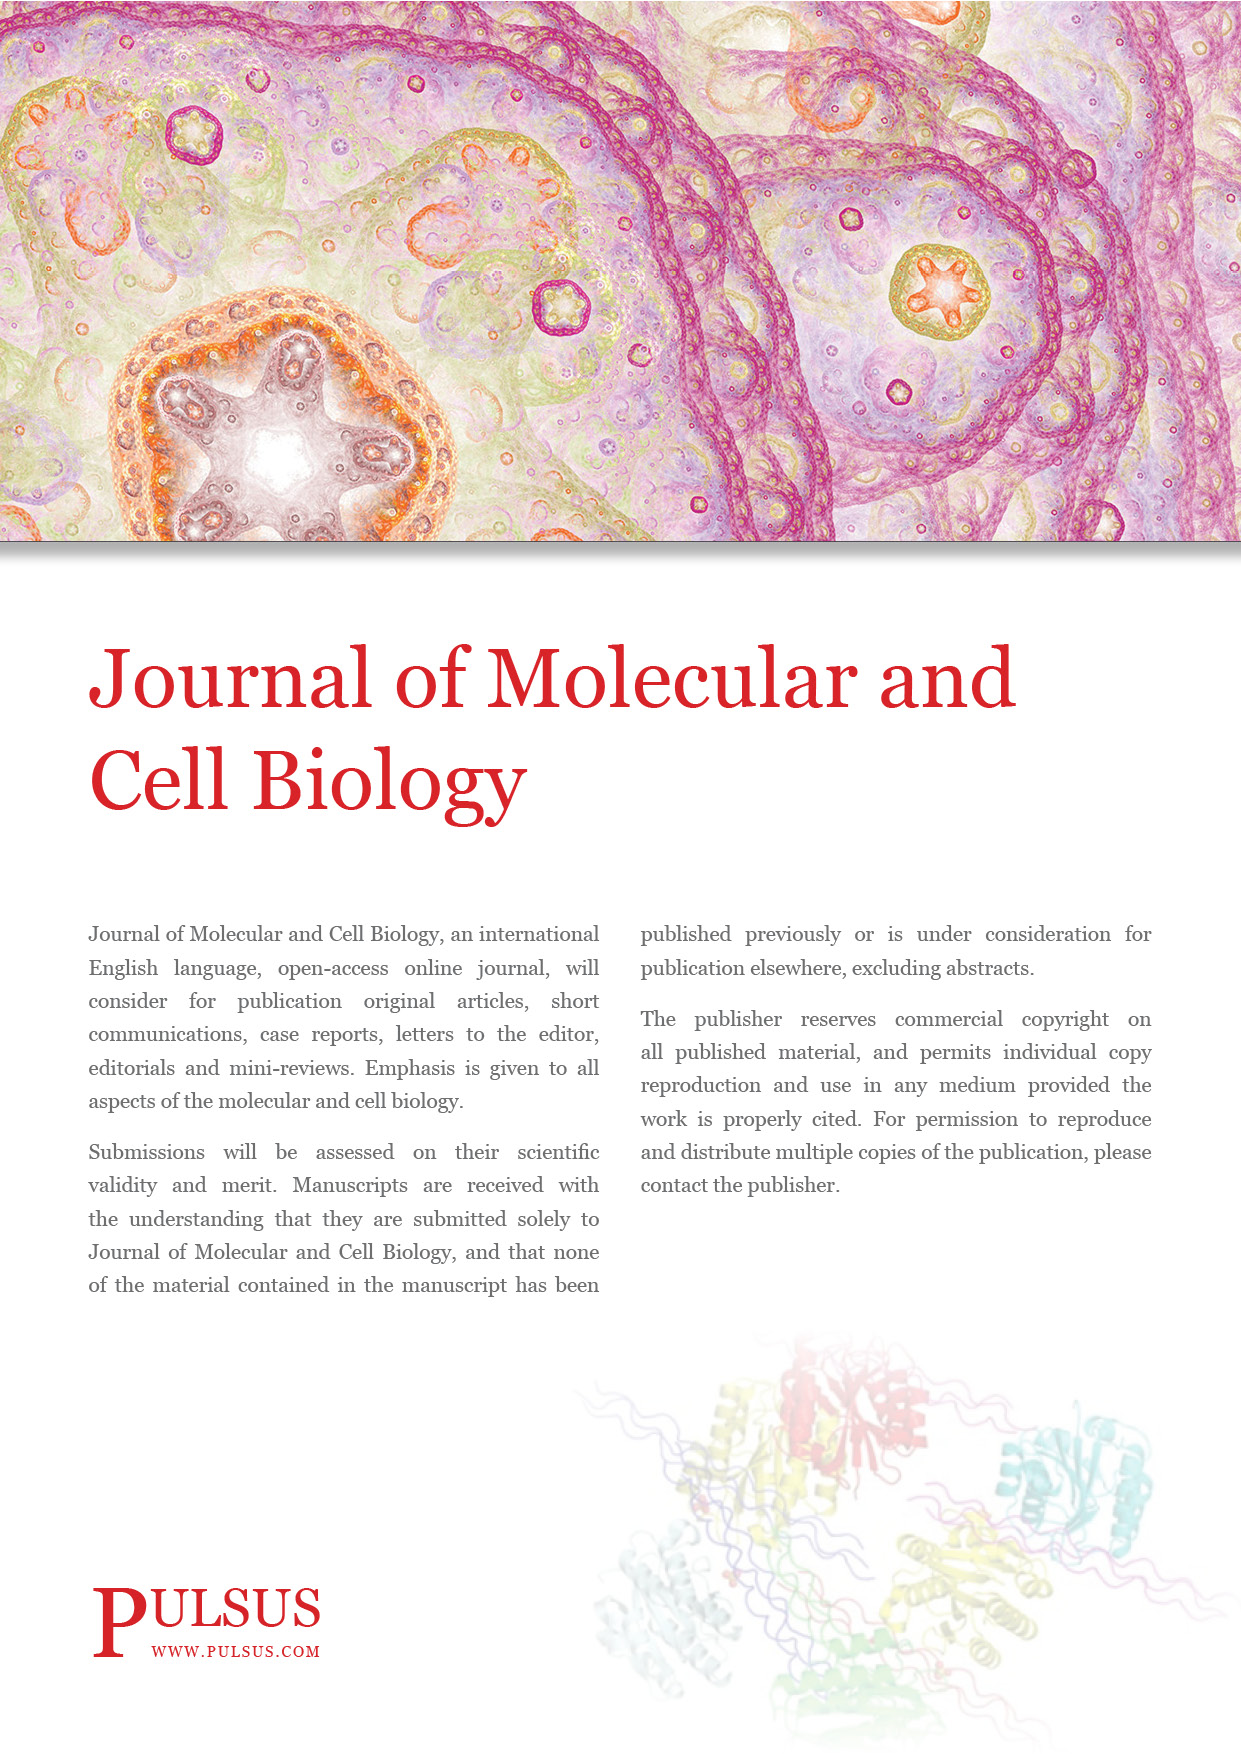 Journal of Molecular and Cell Biology